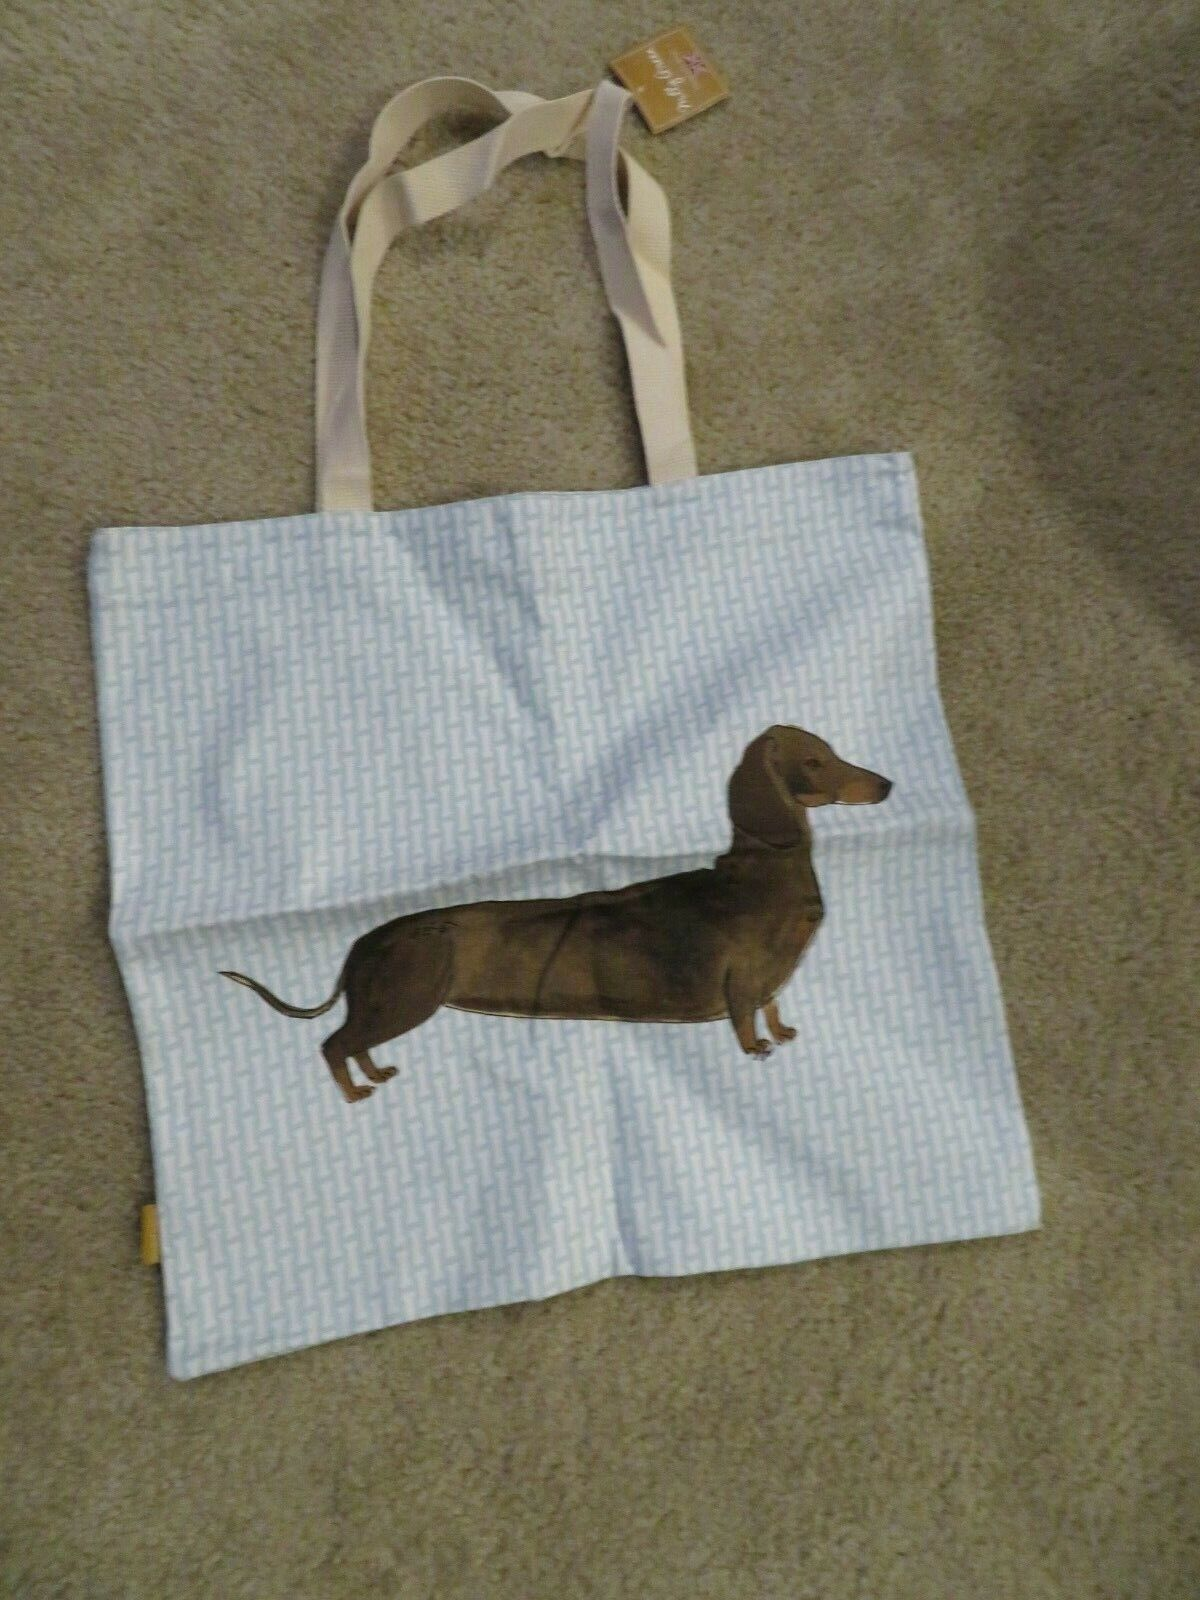 Dachshund Sausage Wiener Dog Large Canvas Tan Gray Tote Tote bag Purse NEW